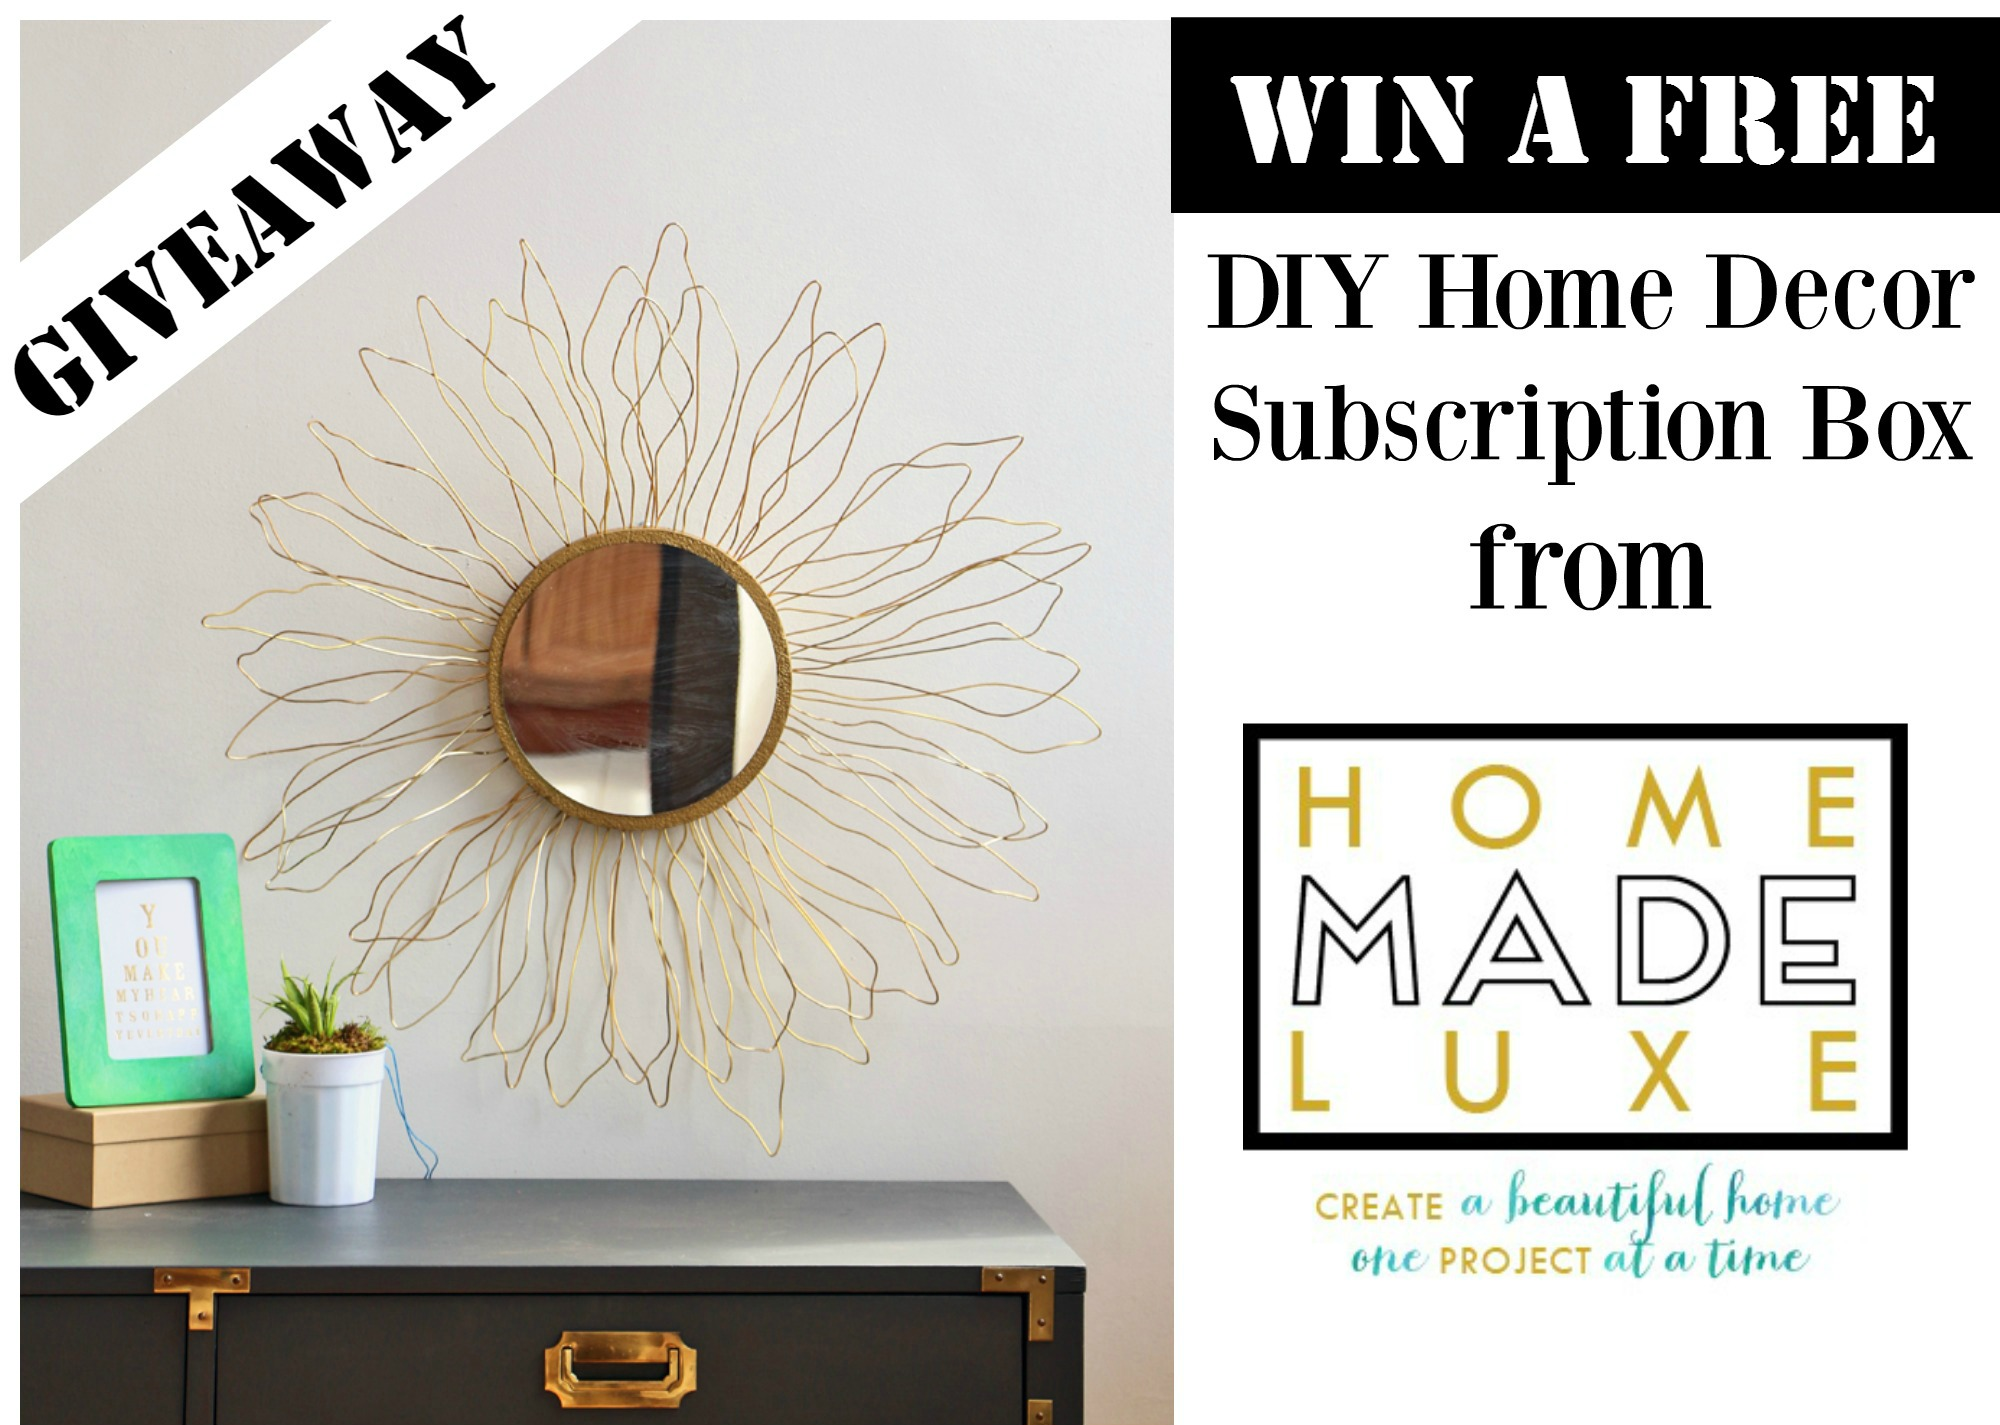 Free DIY Home Decor Subscription Box Giveaway   Home Made Luxe Is A Monthly  DIY Home